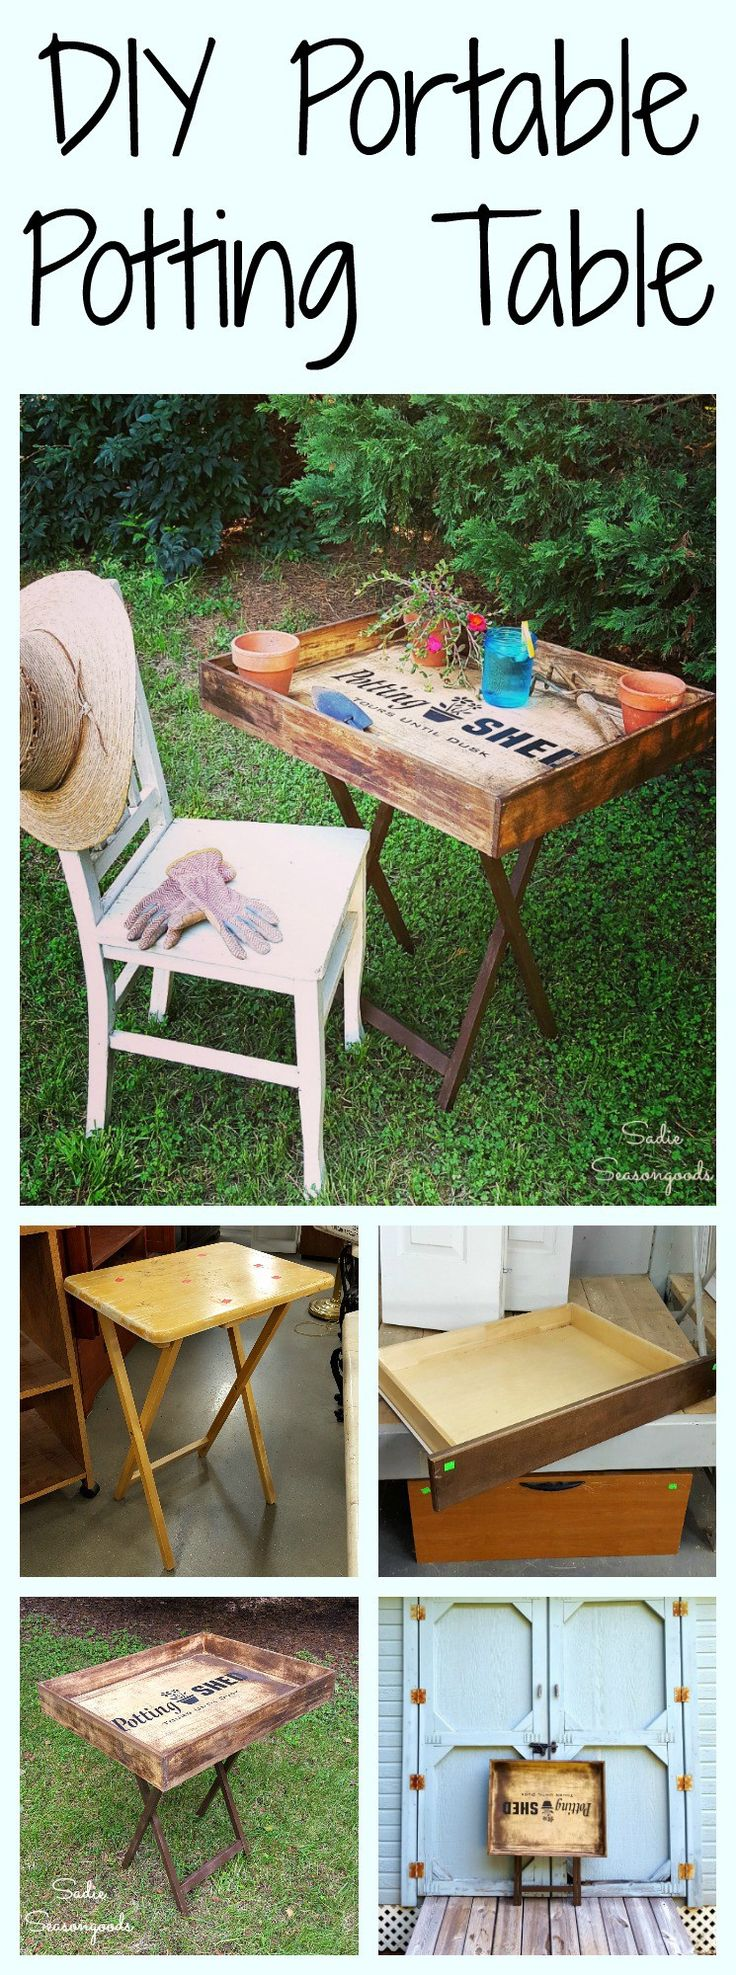 I absolutely love a gorgeous potting bench...but they're usually too large for my living space. So I decided to create something smaller and portable that I could tuck away at season's end. I repurposed an old wooden tray table with a shallow salvaged dresser drawer to create a DIY portable potting bench table that I can store in my shed during the winter! And I used Funky Junk Old Sign Stencils to give it a little more character. Super easy DIY upcycle craft project from Sadie Seasongoods…